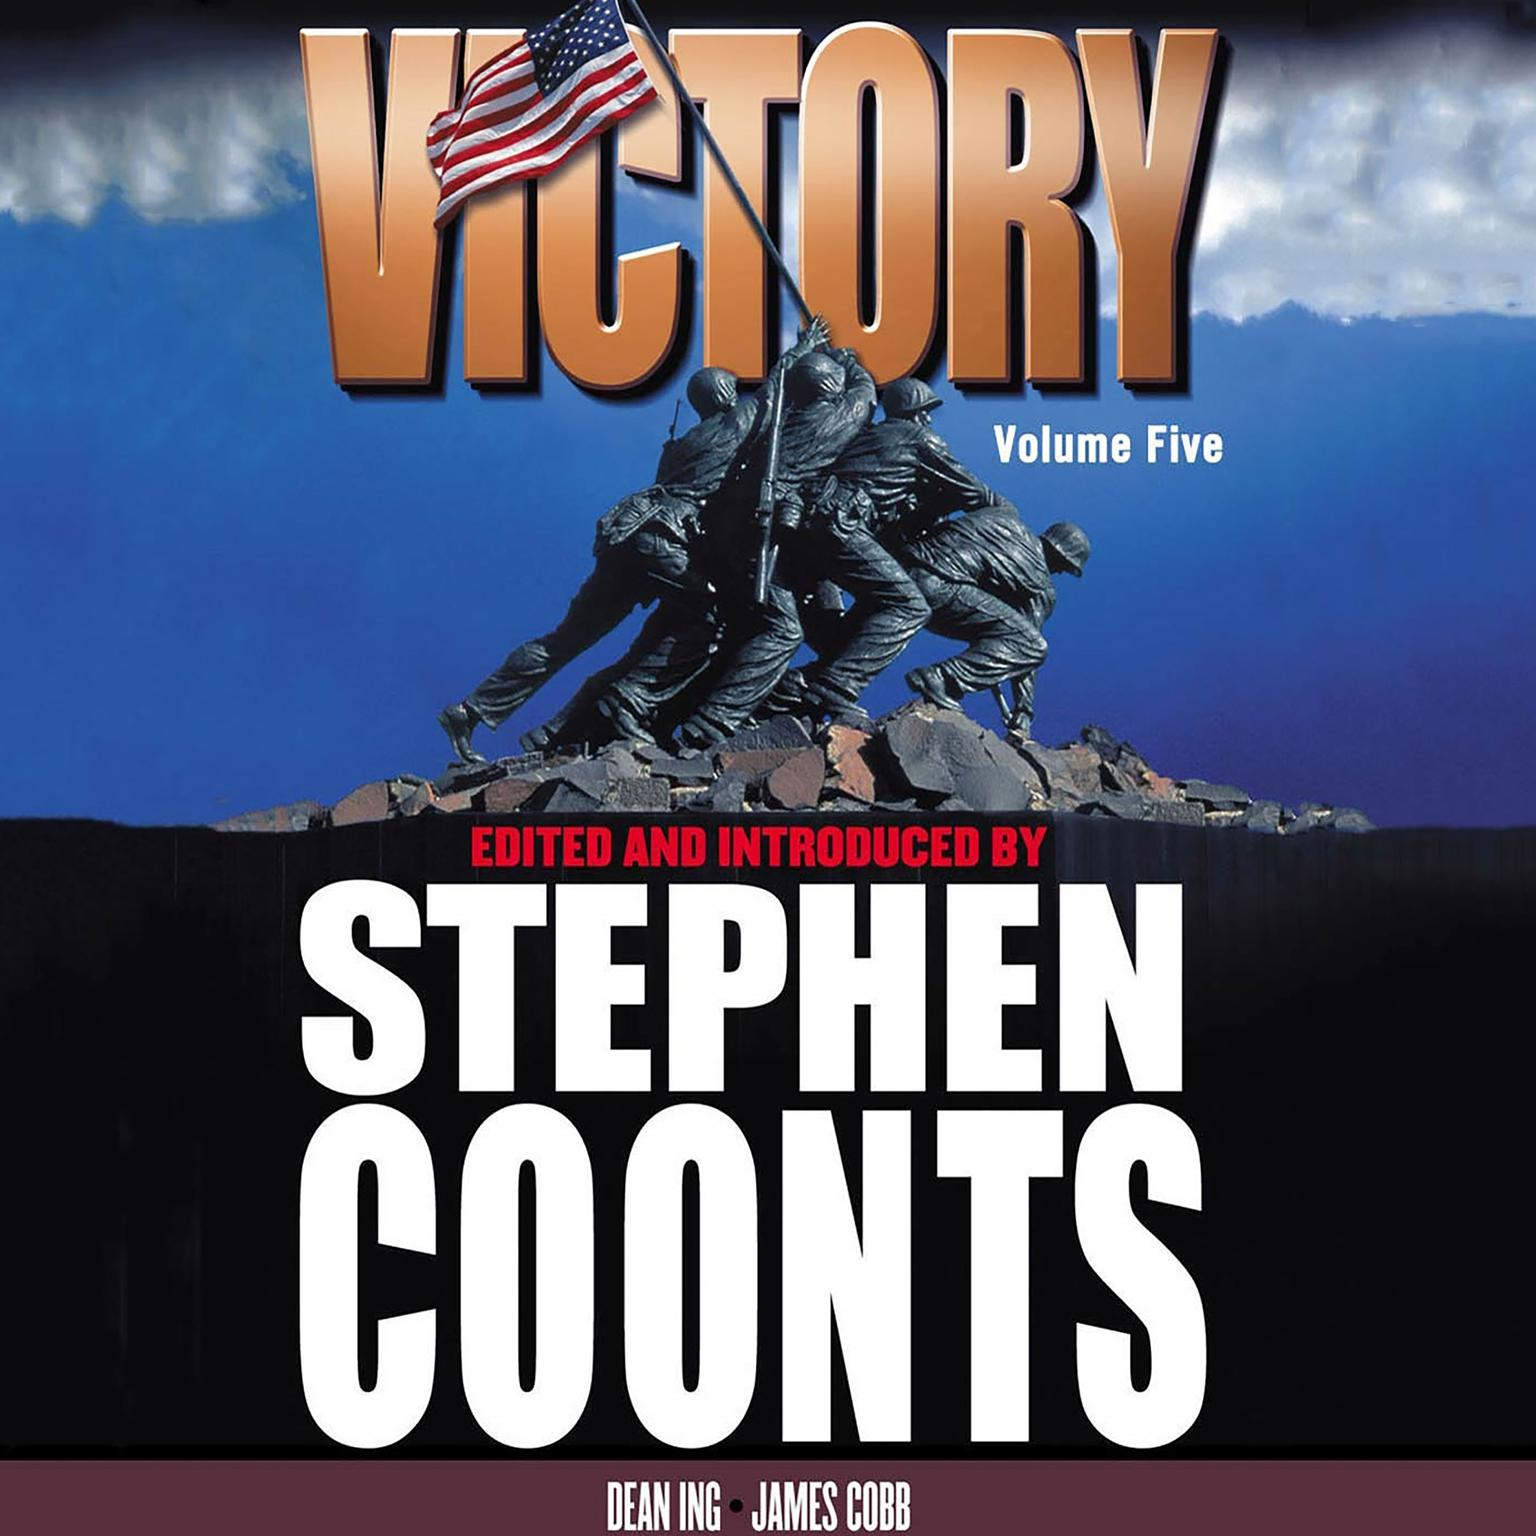 Printable Victory - Volume 5 Audiobook Cover Art